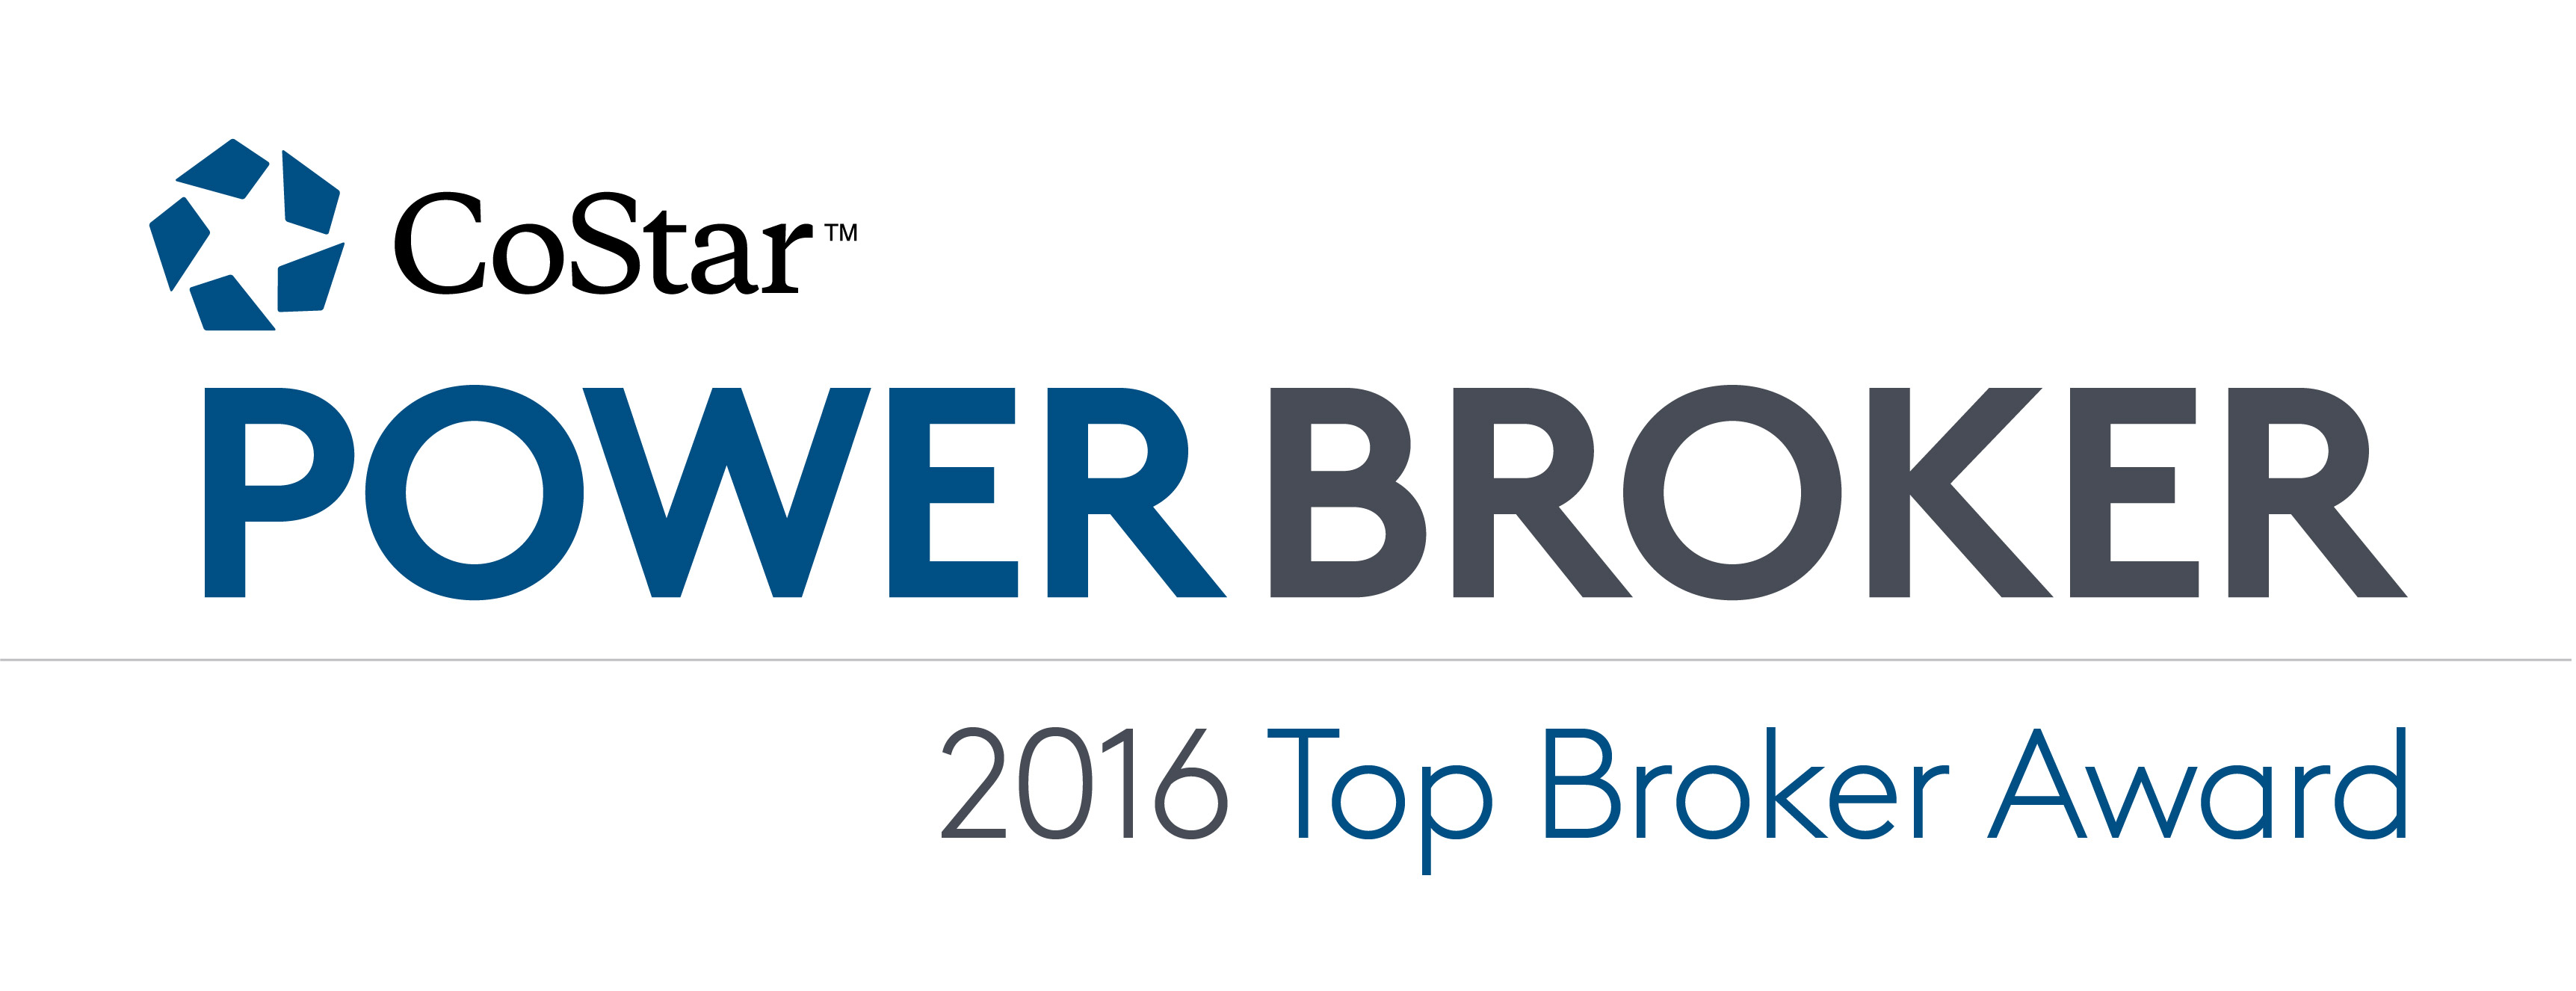 GOODMAN REAL ESTATE SERVICES GROUPS' BROKERS RECEIVE 2016 COSTAR POWER BROKER AWARD